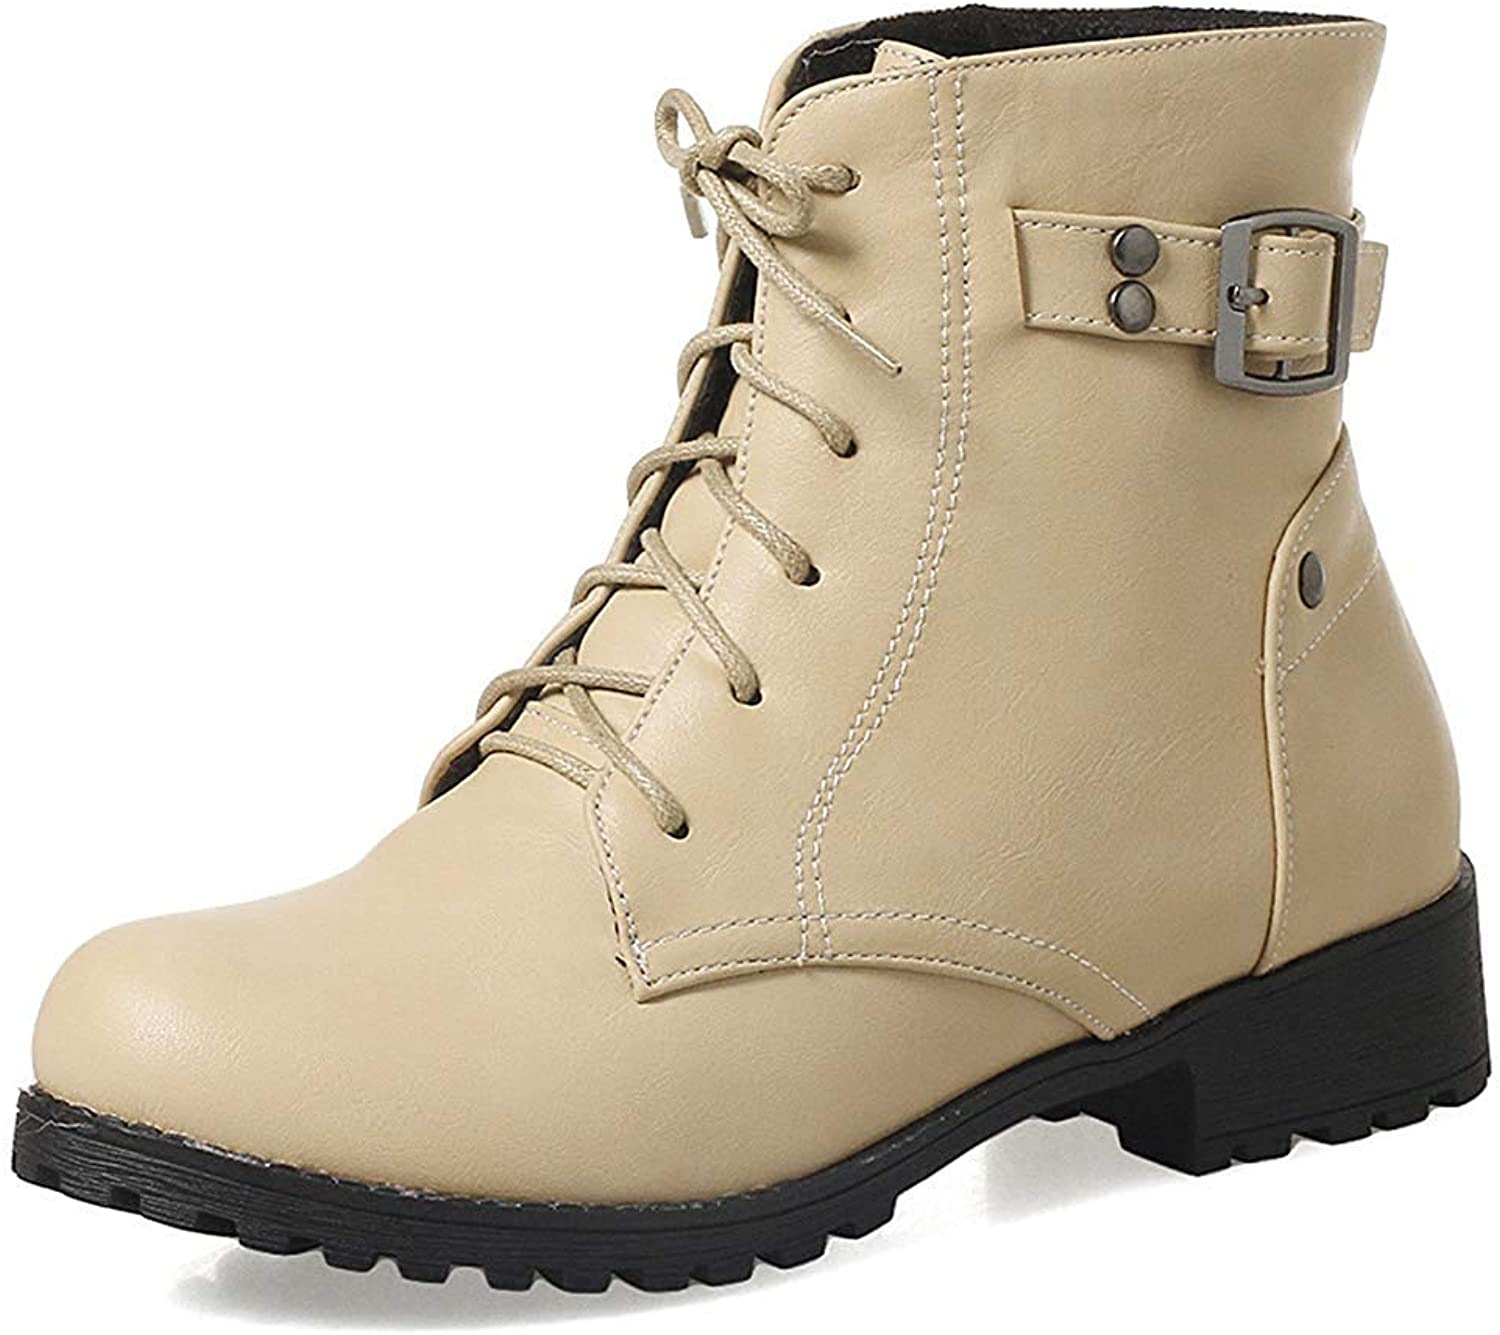 Gedigits Women's Stylish Studded Buckle Strap Ankle Booties Round Toe Low Heel Lace-up Short Martin Boots Beige 5 M US